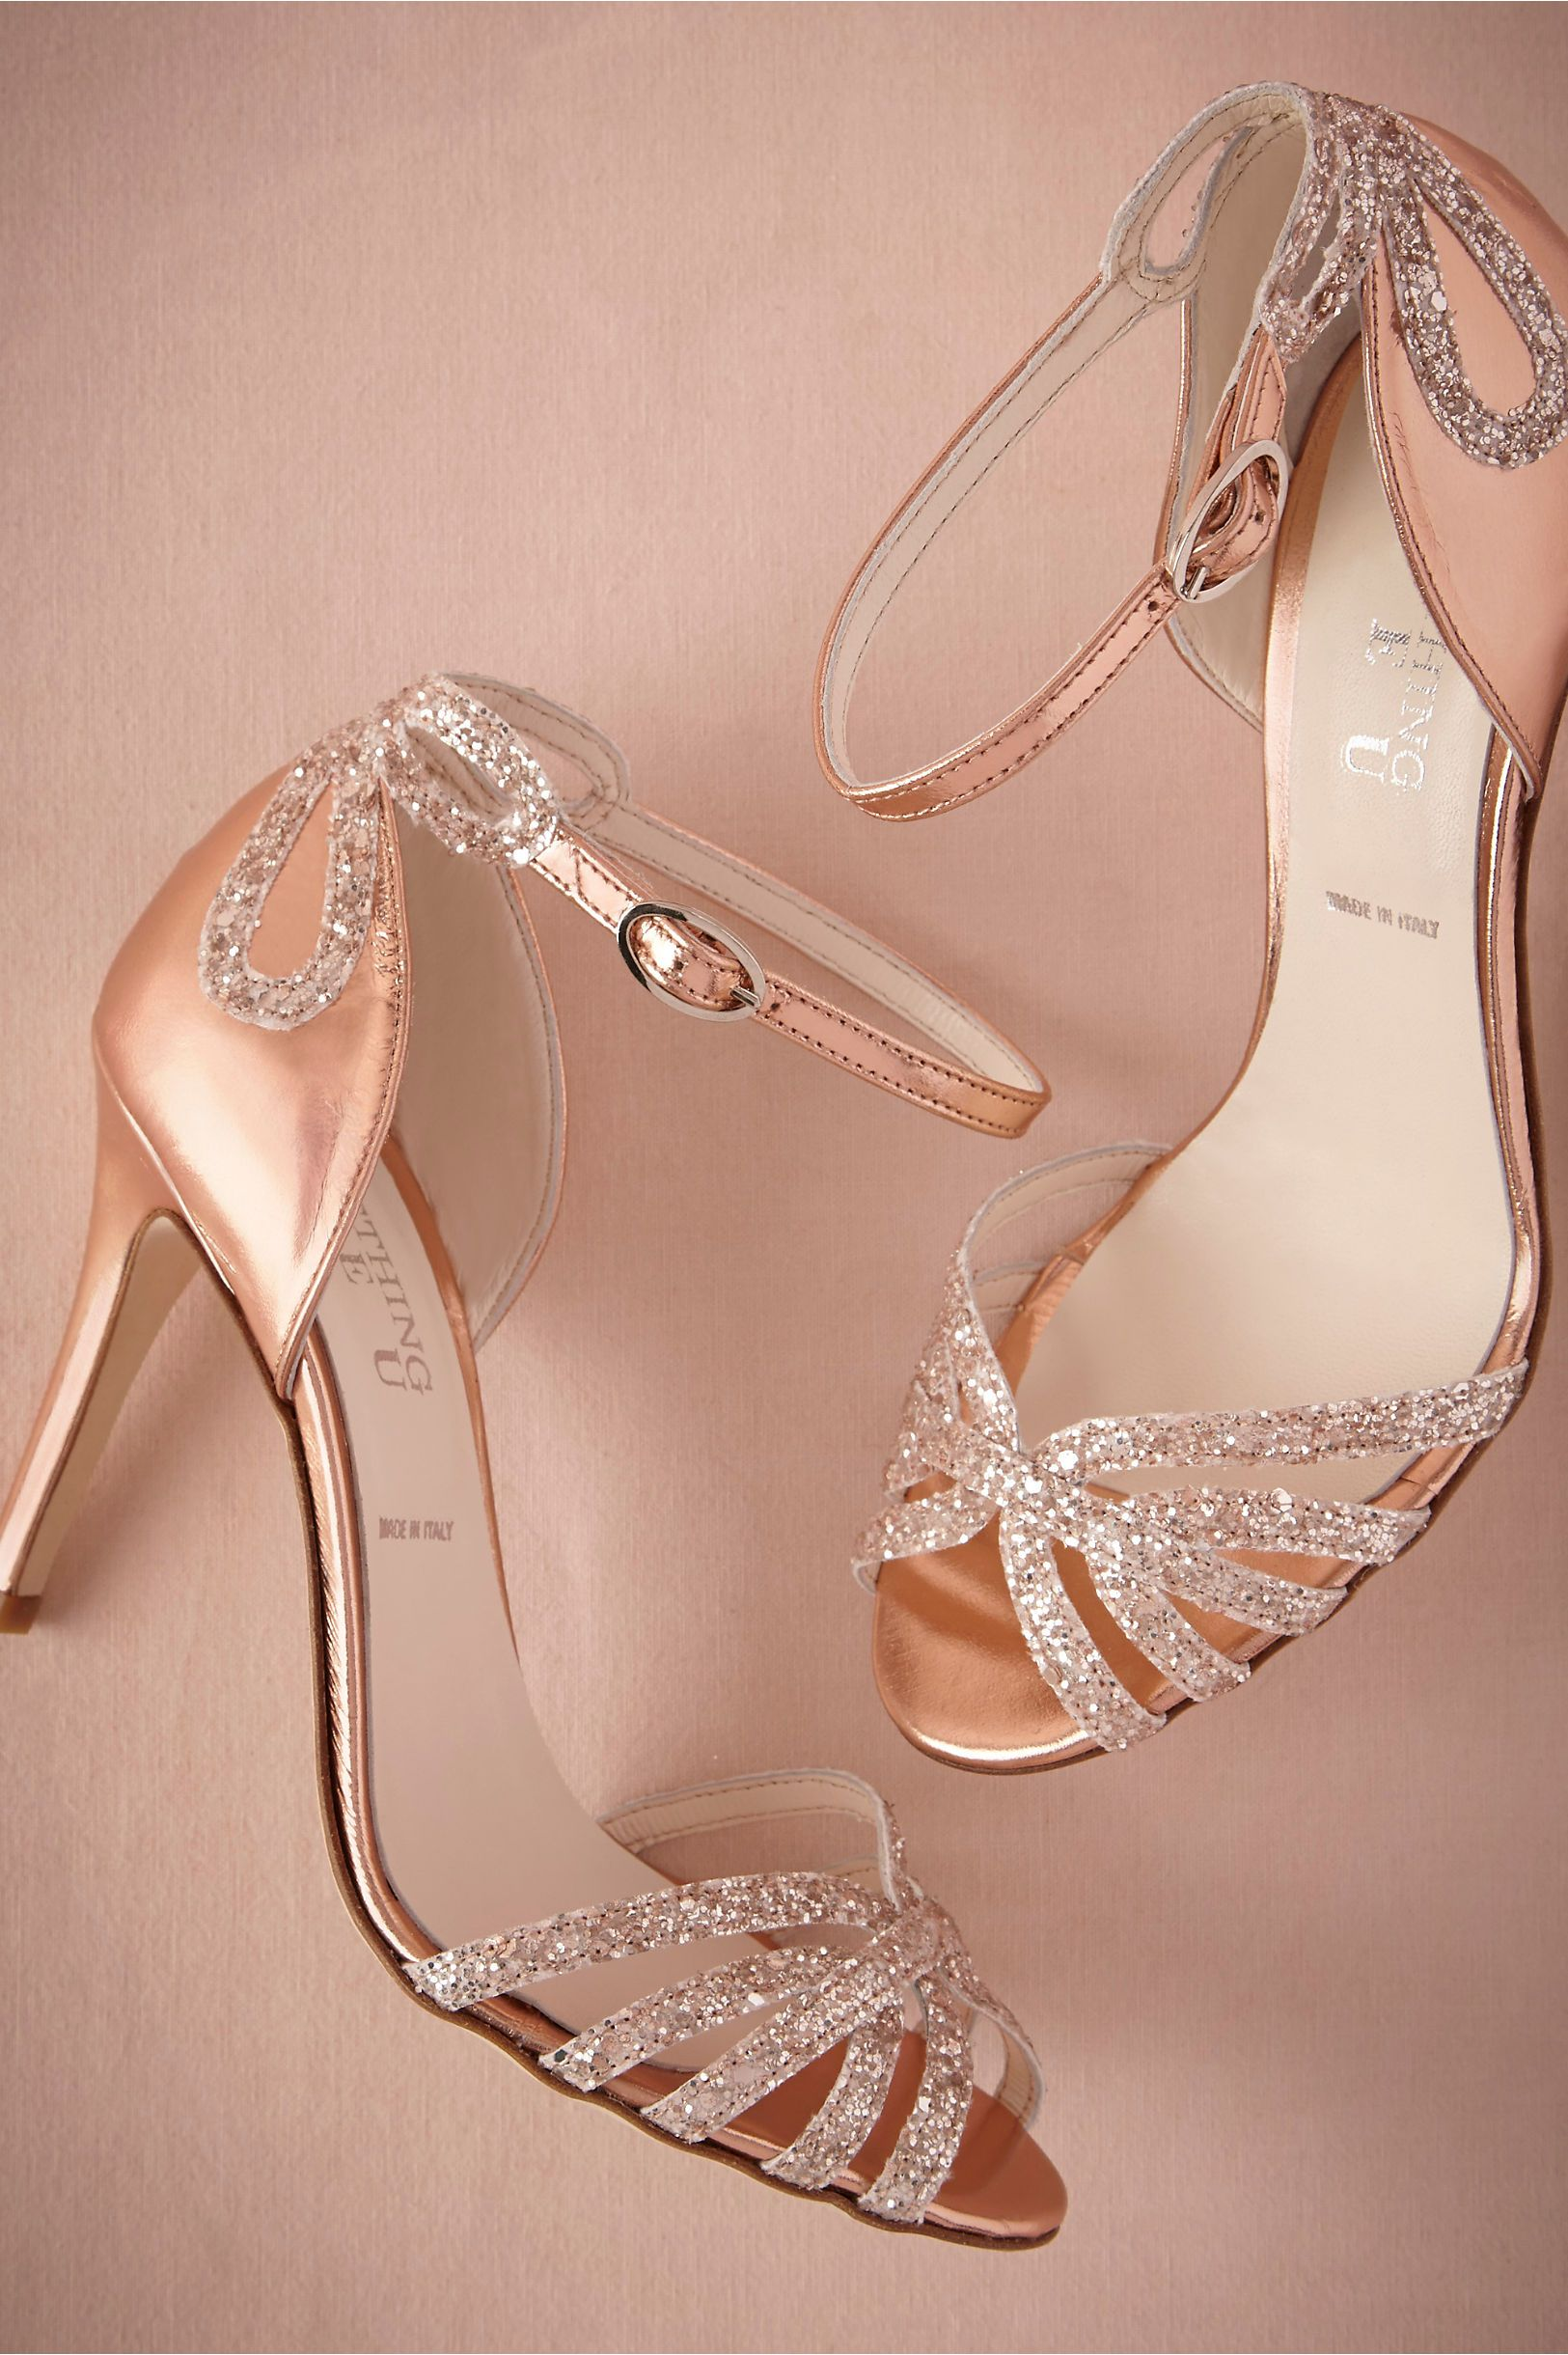 5 Ways To Bring Your Rose Gold Wedding Life